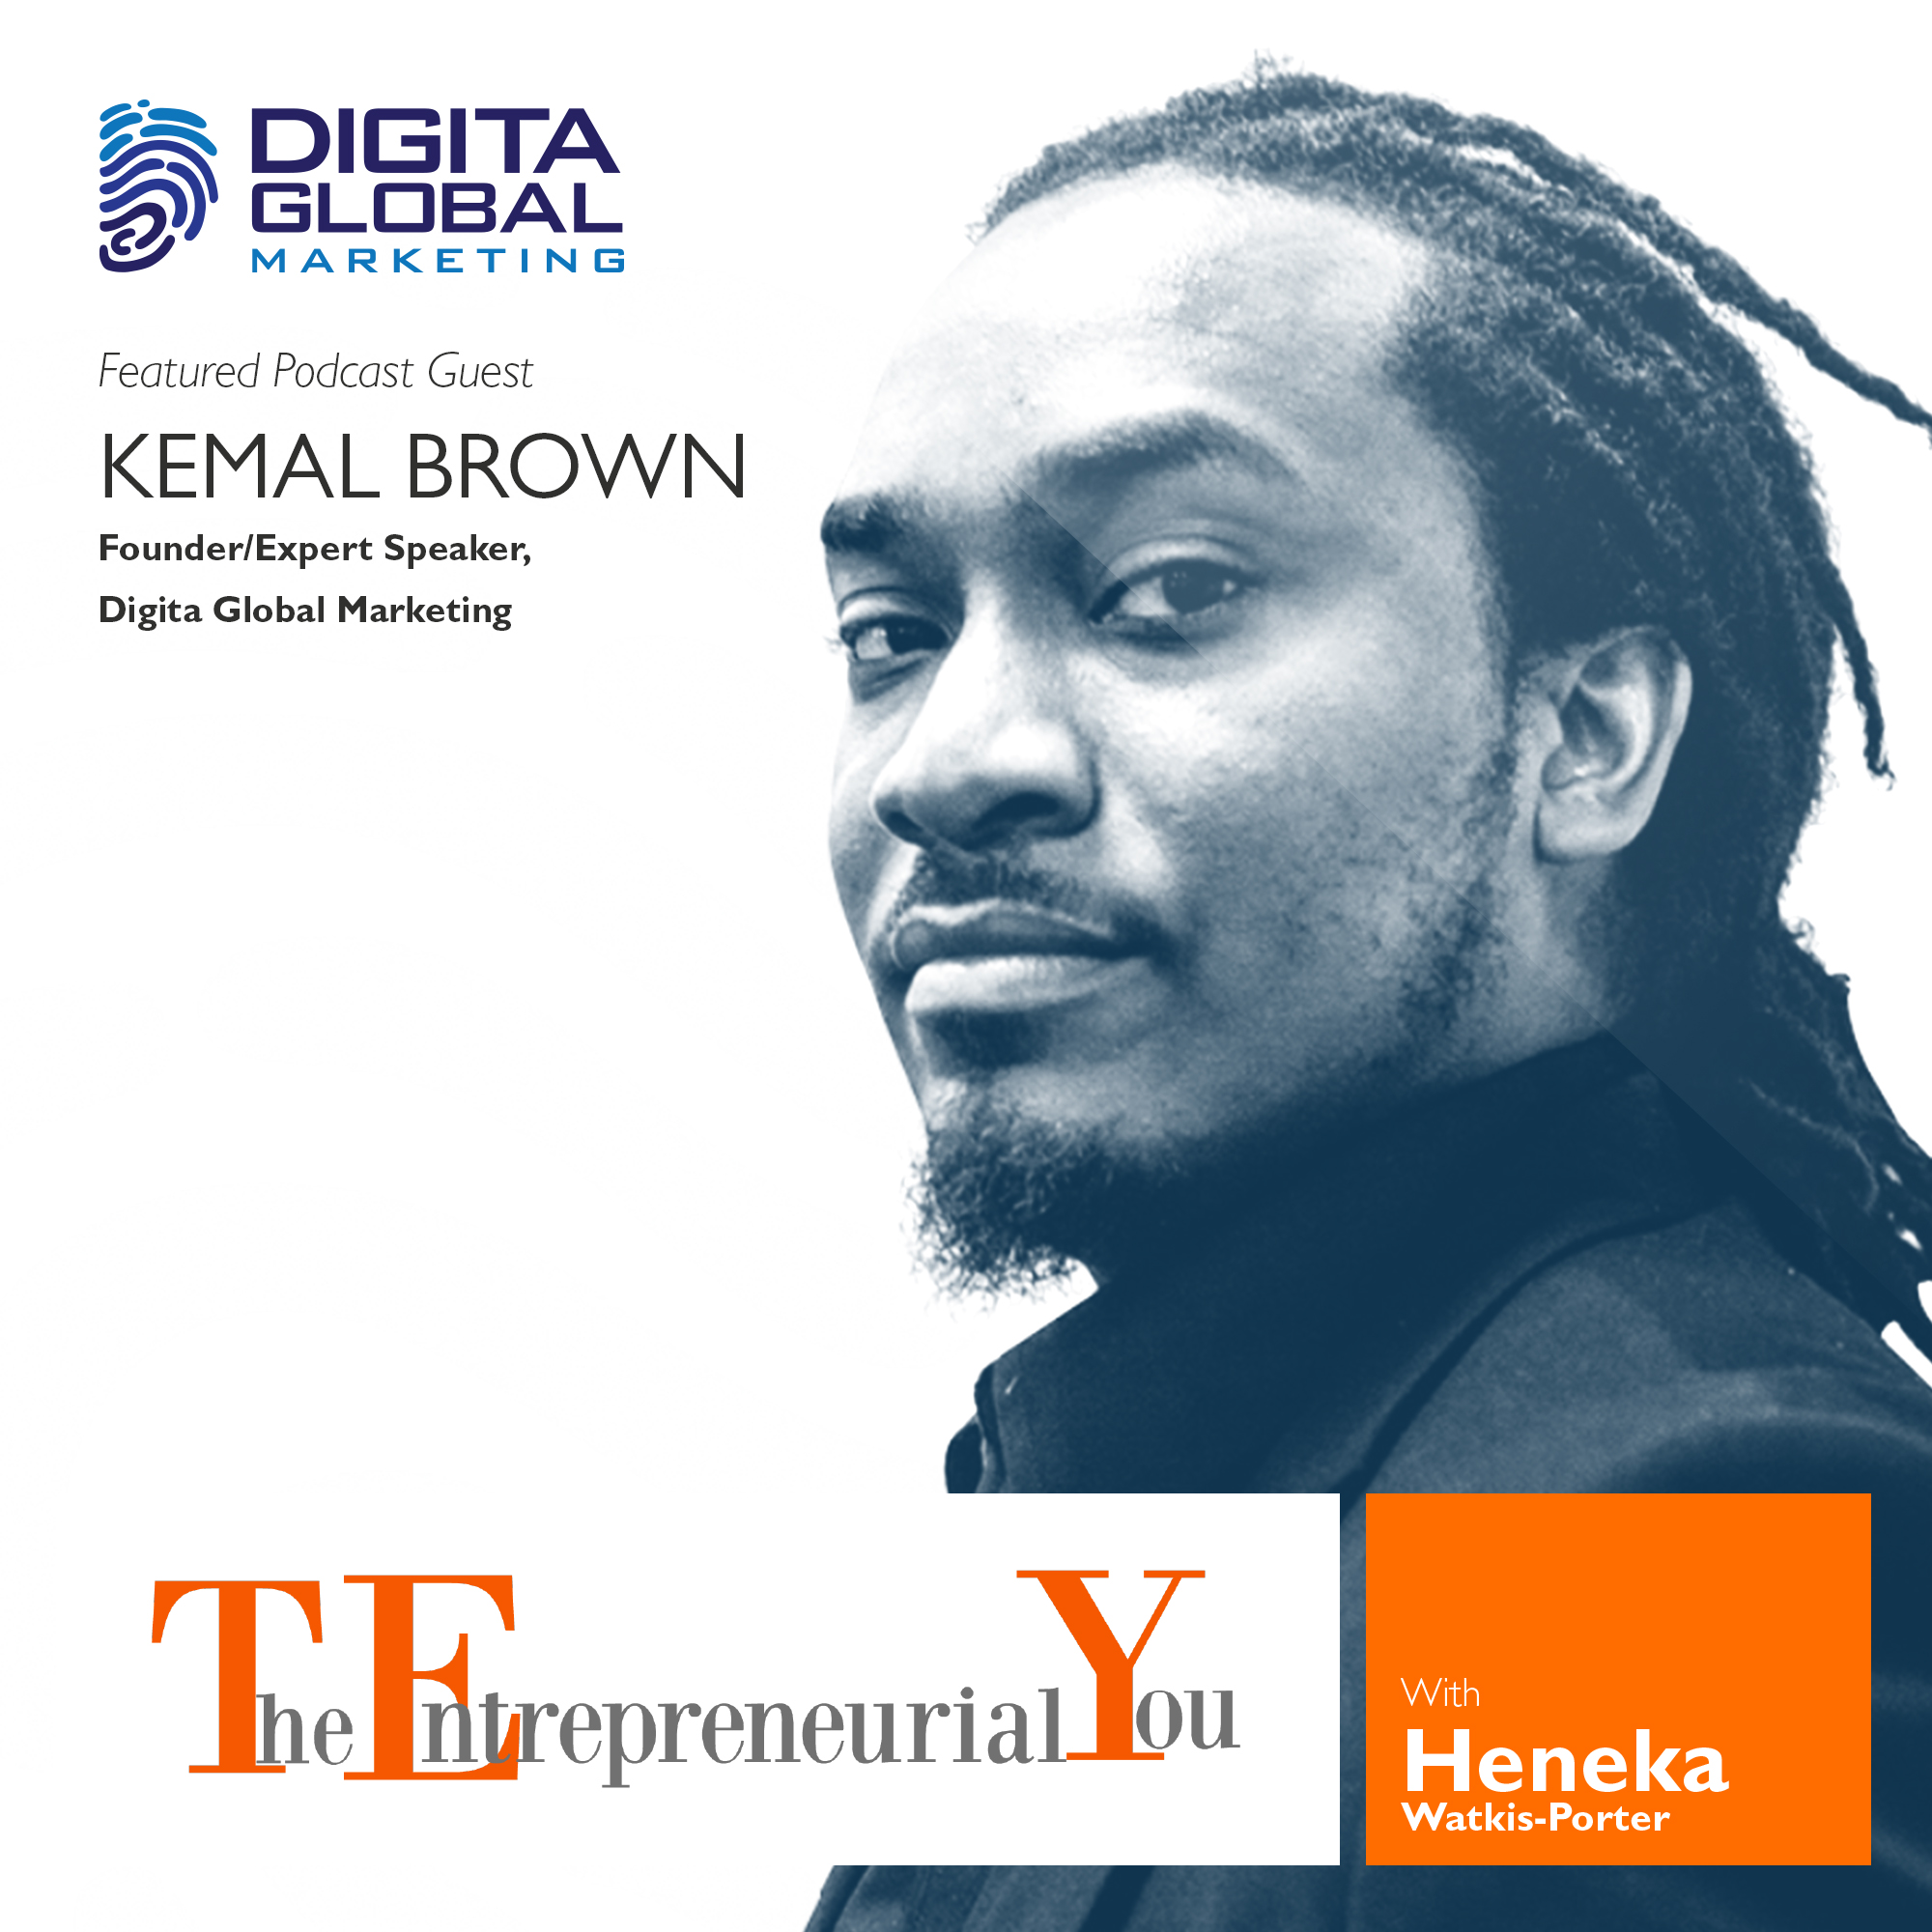 004 see your highest self and work daily to become that person with kemal brown